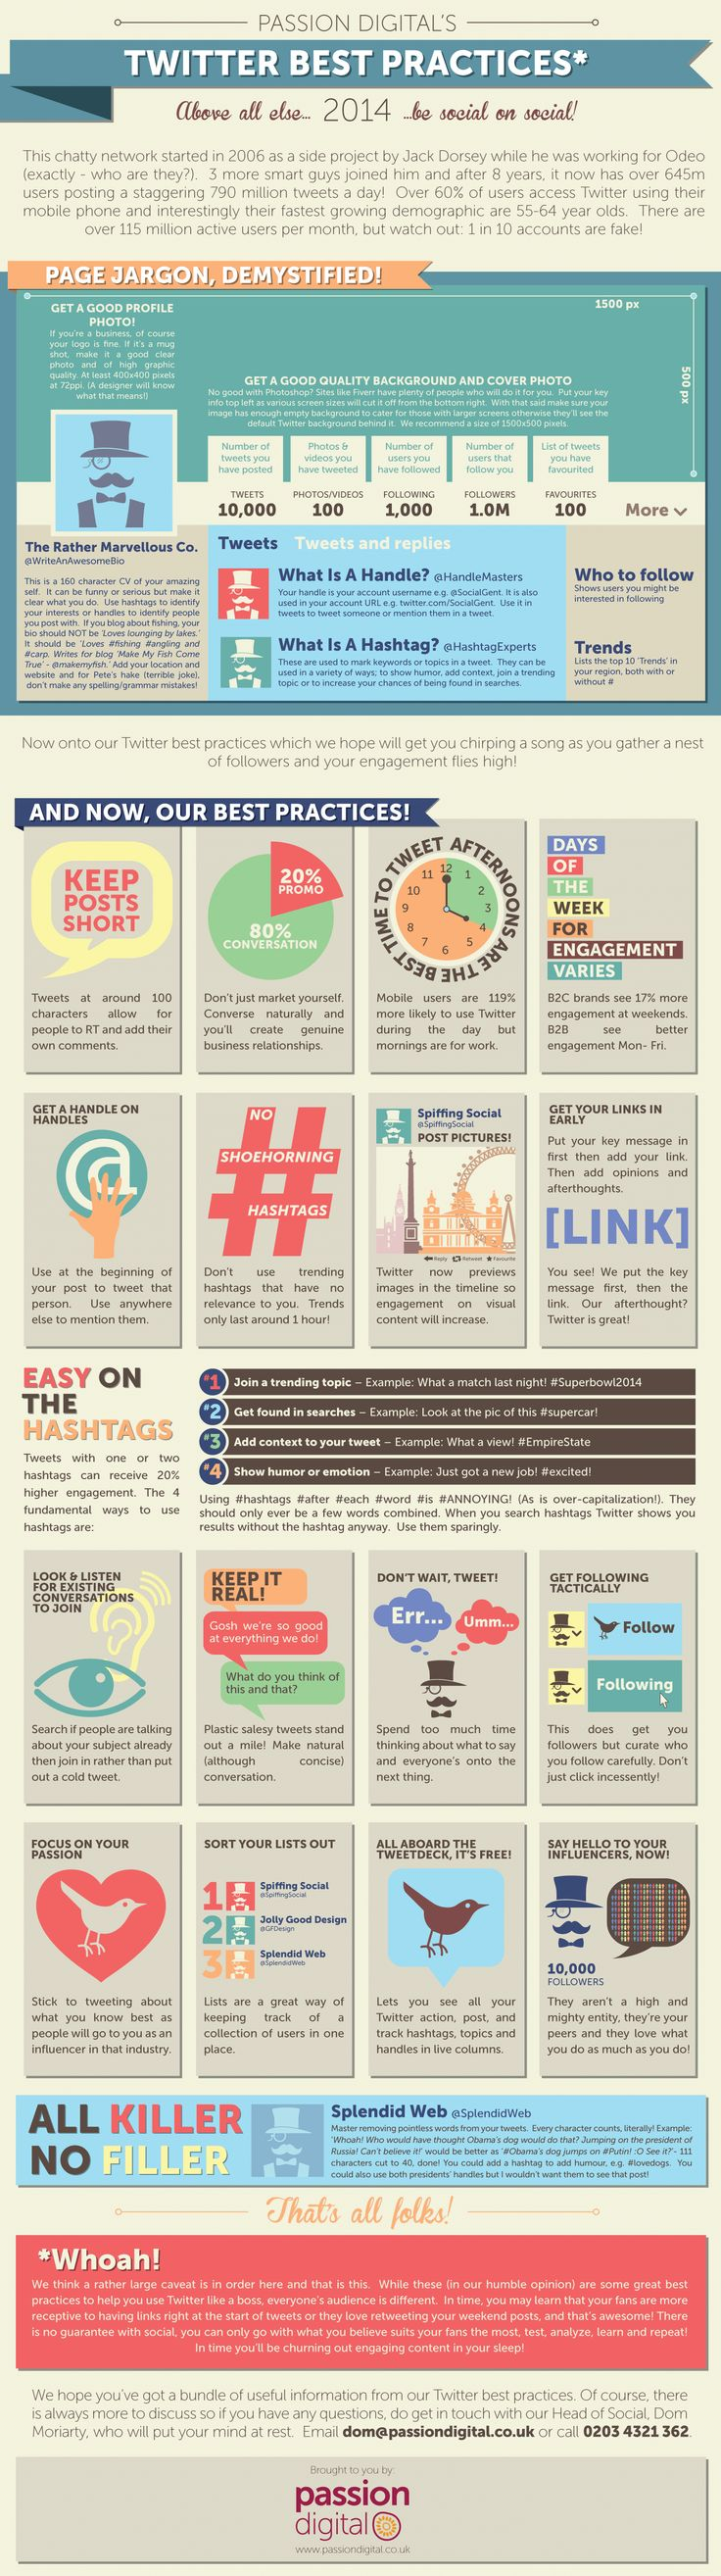 23 (Rather Marvellous) Twitter Best Practices [INFOGRAPHIC]